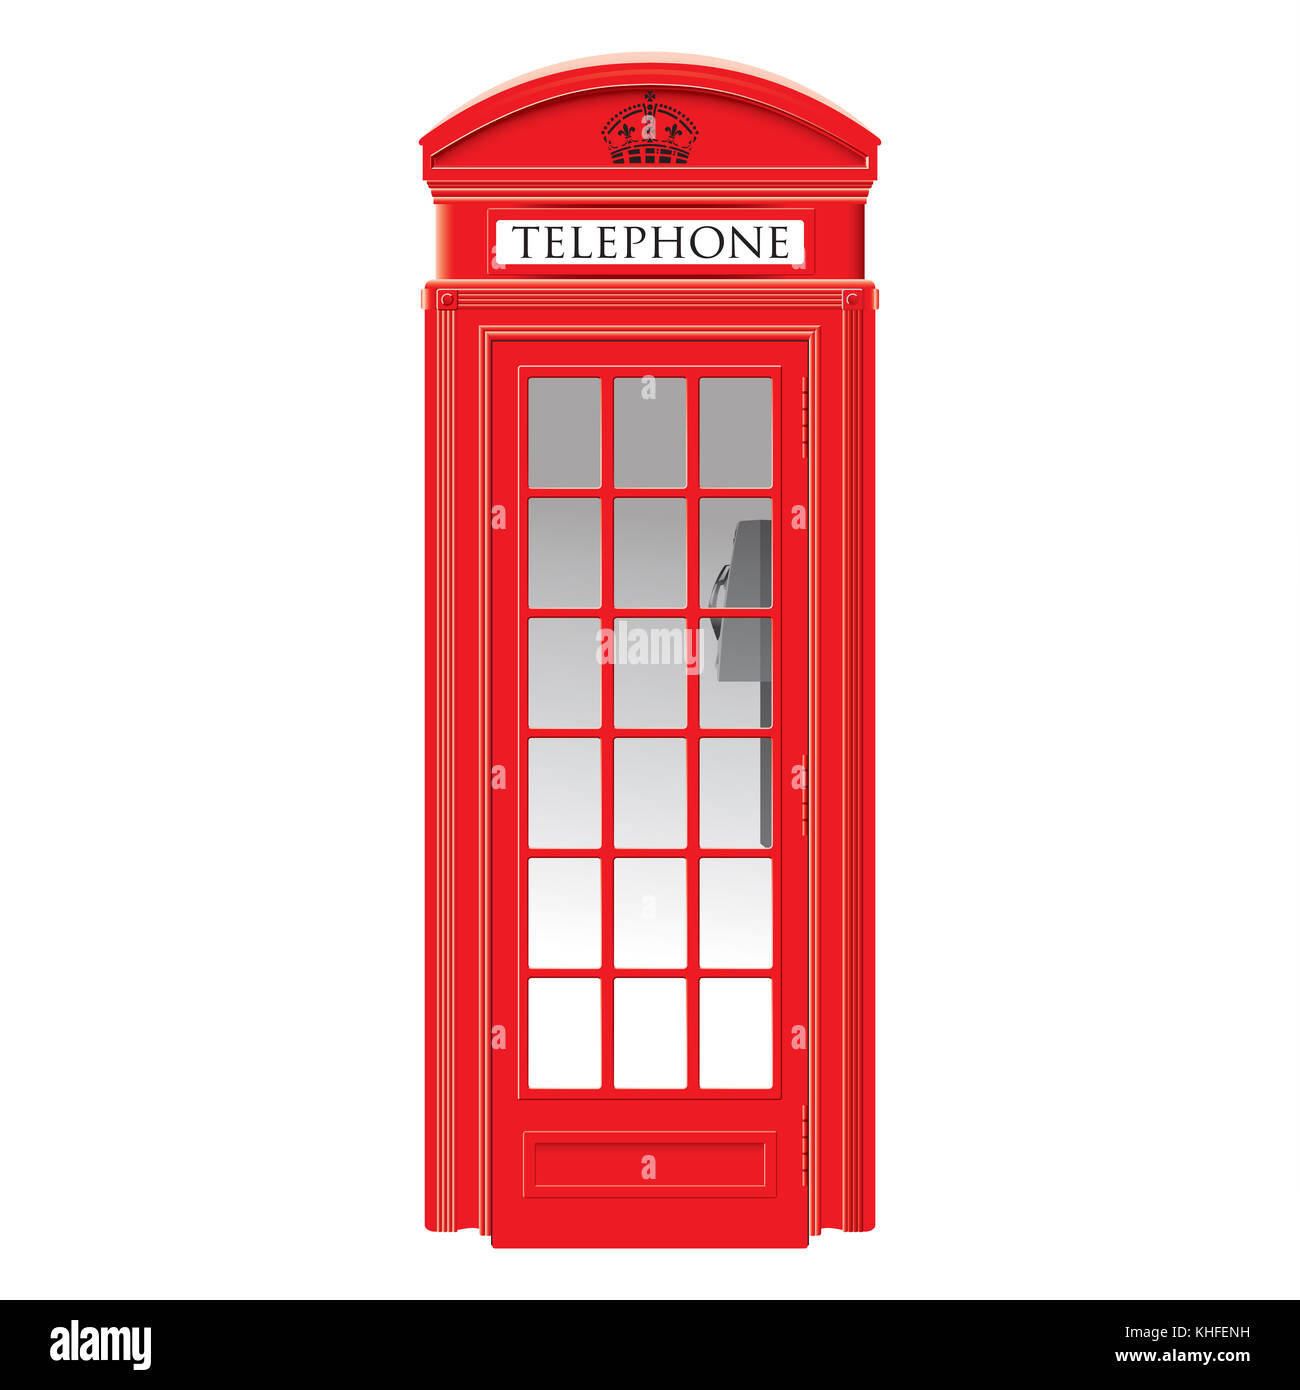 Red telephone box - London -  very detailed isolated illustration - Stock Image